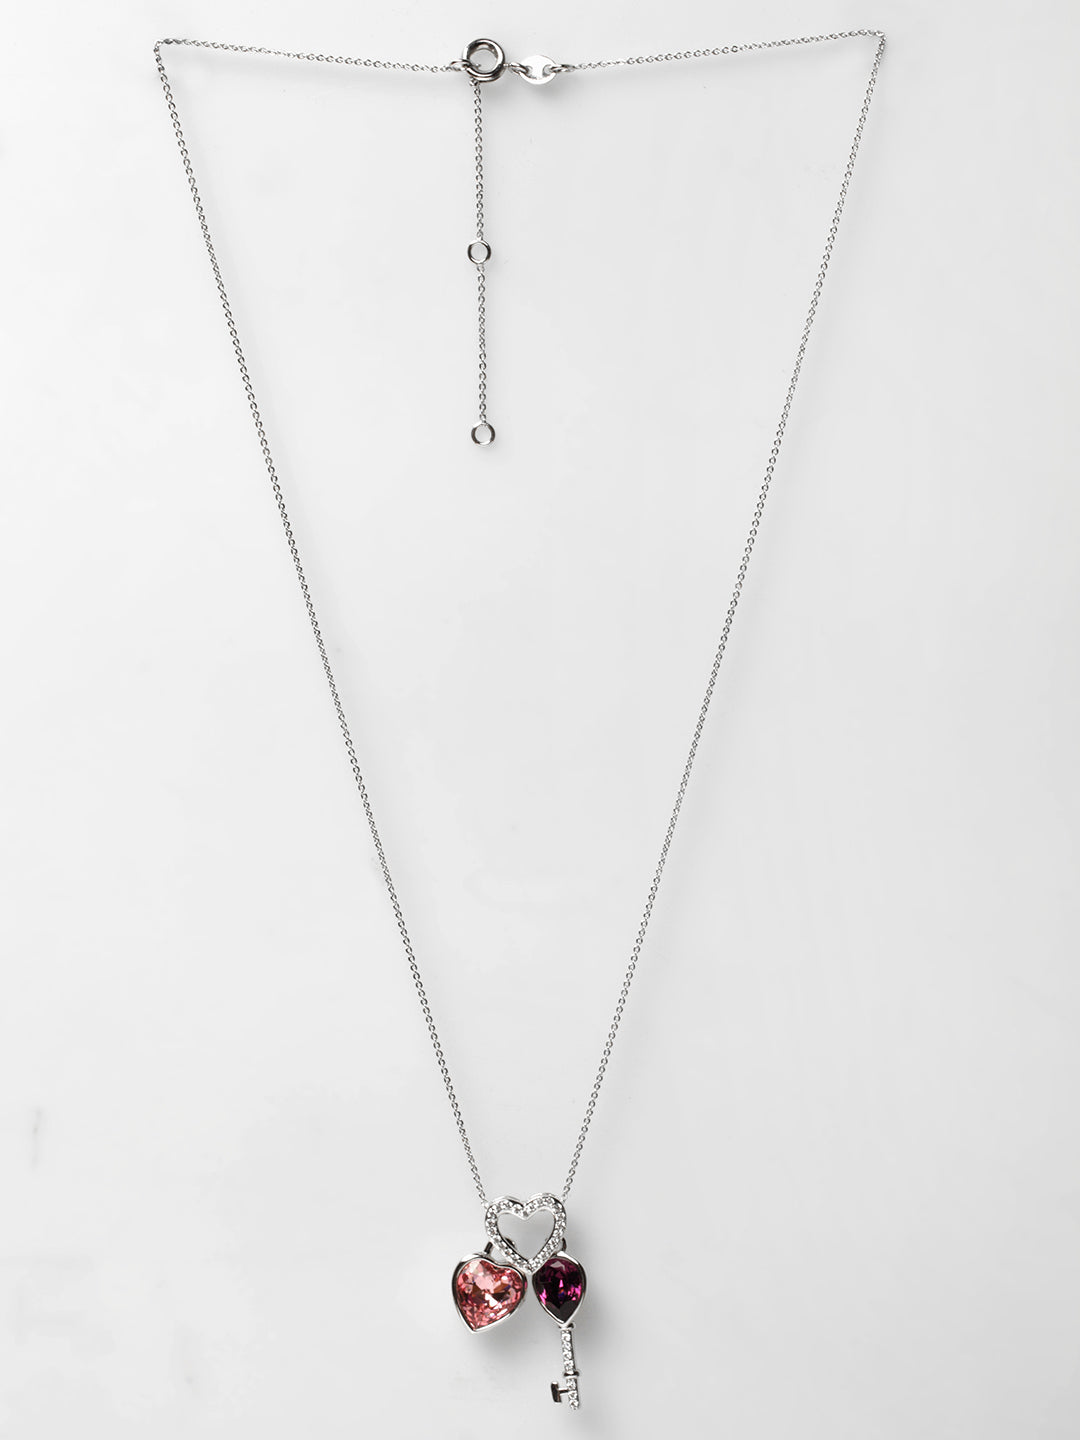 Avant-Garde Paris Crystallized with Swarovski Heart and Key Pendant